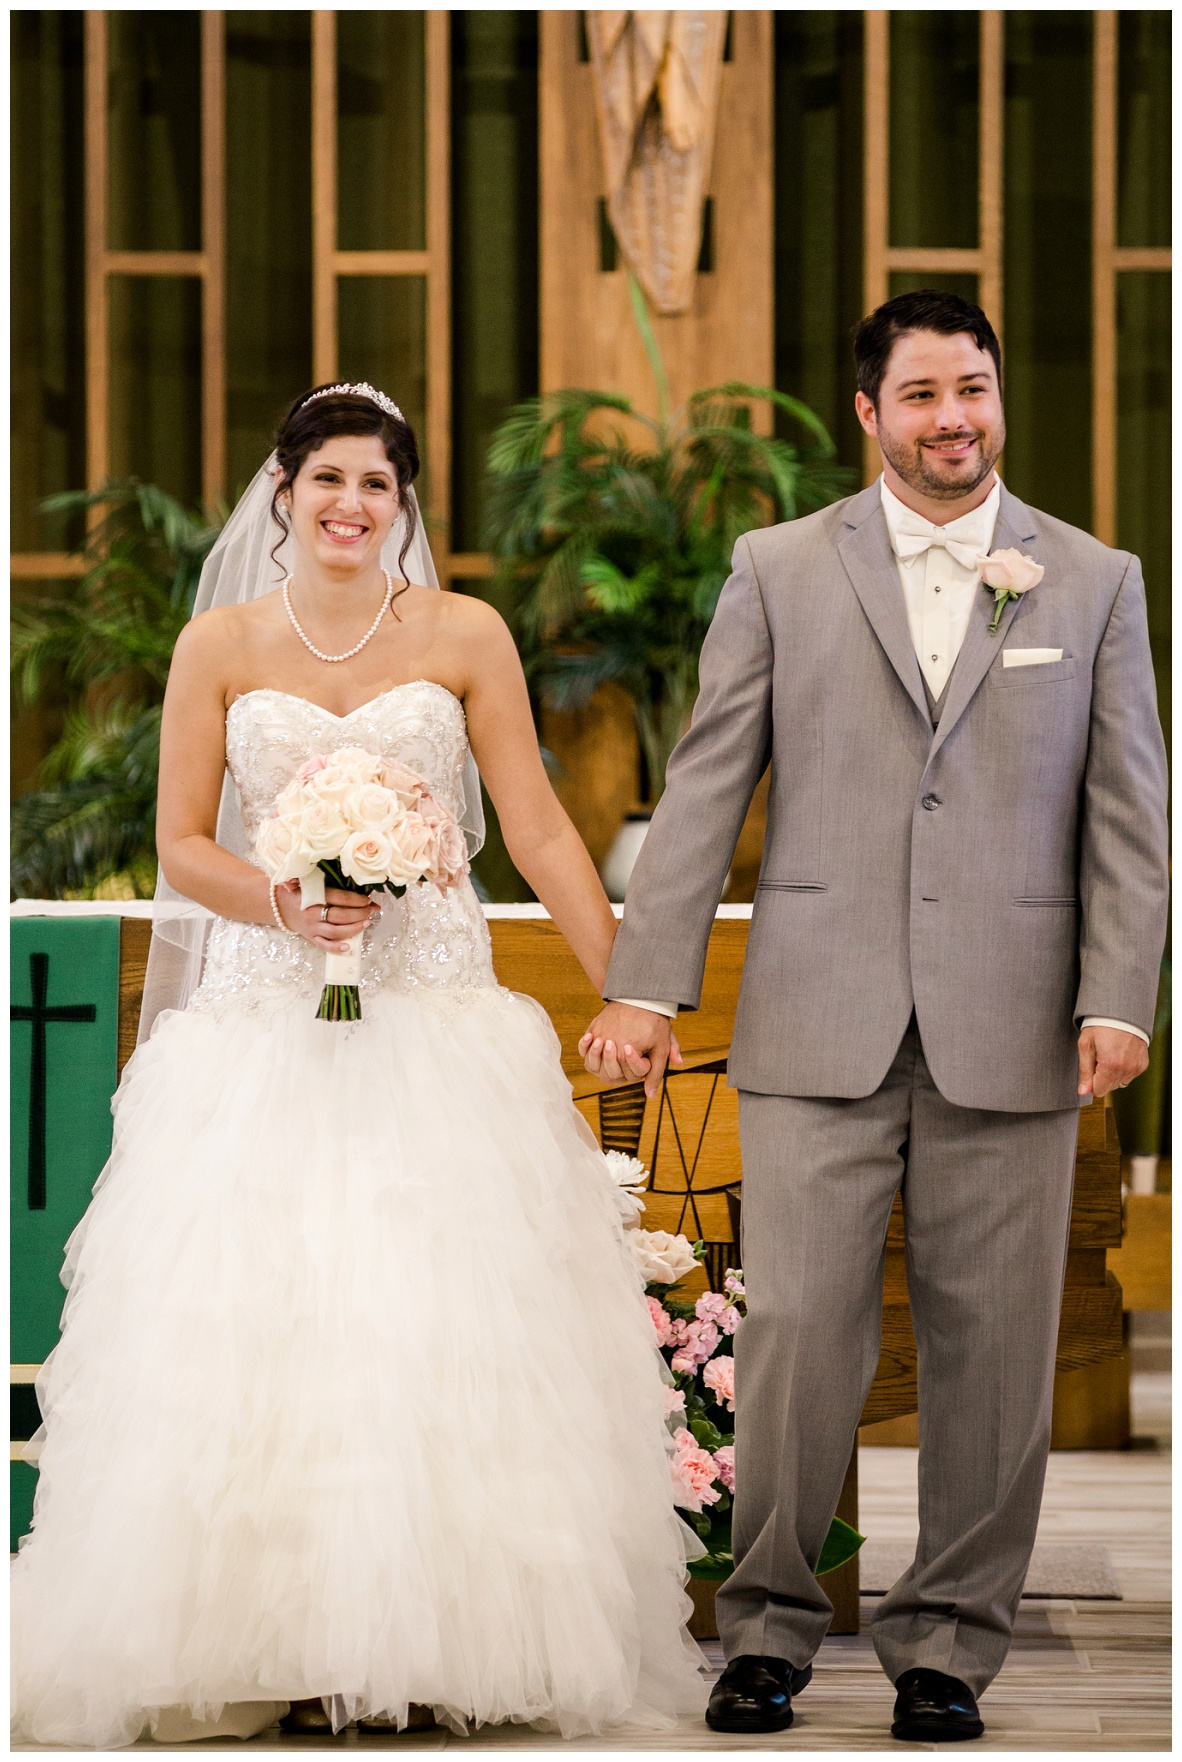 Mr. and Mrs. King_0032.jpg